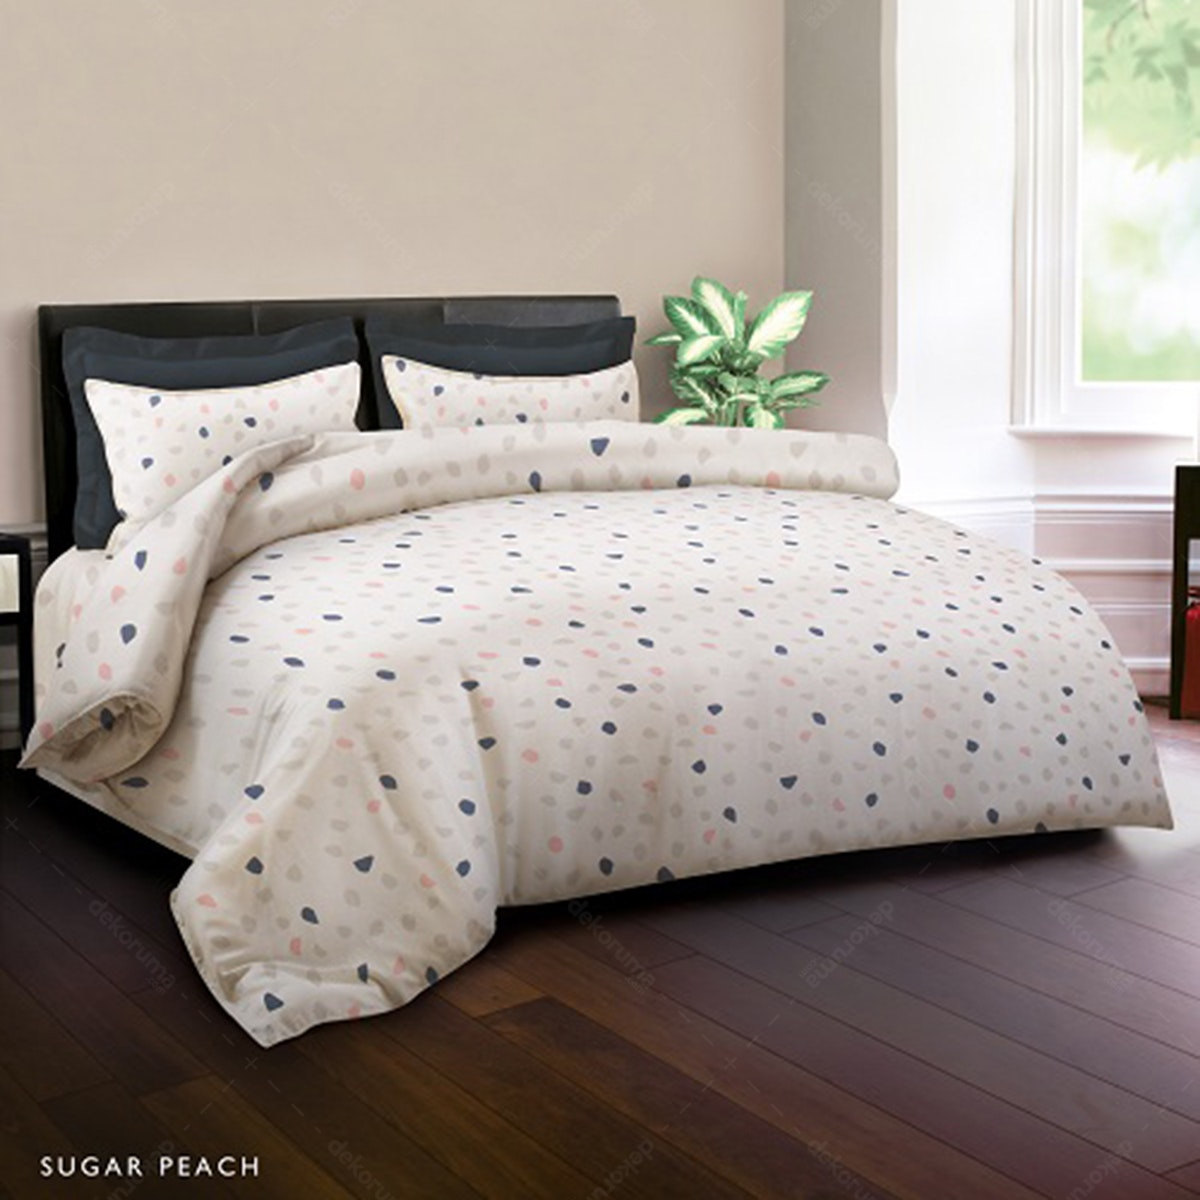 King Rabbit Set Bed Cover & Sprei Sarung Bantal King Motif Sugar - Peach Uk 180x200x40 cm